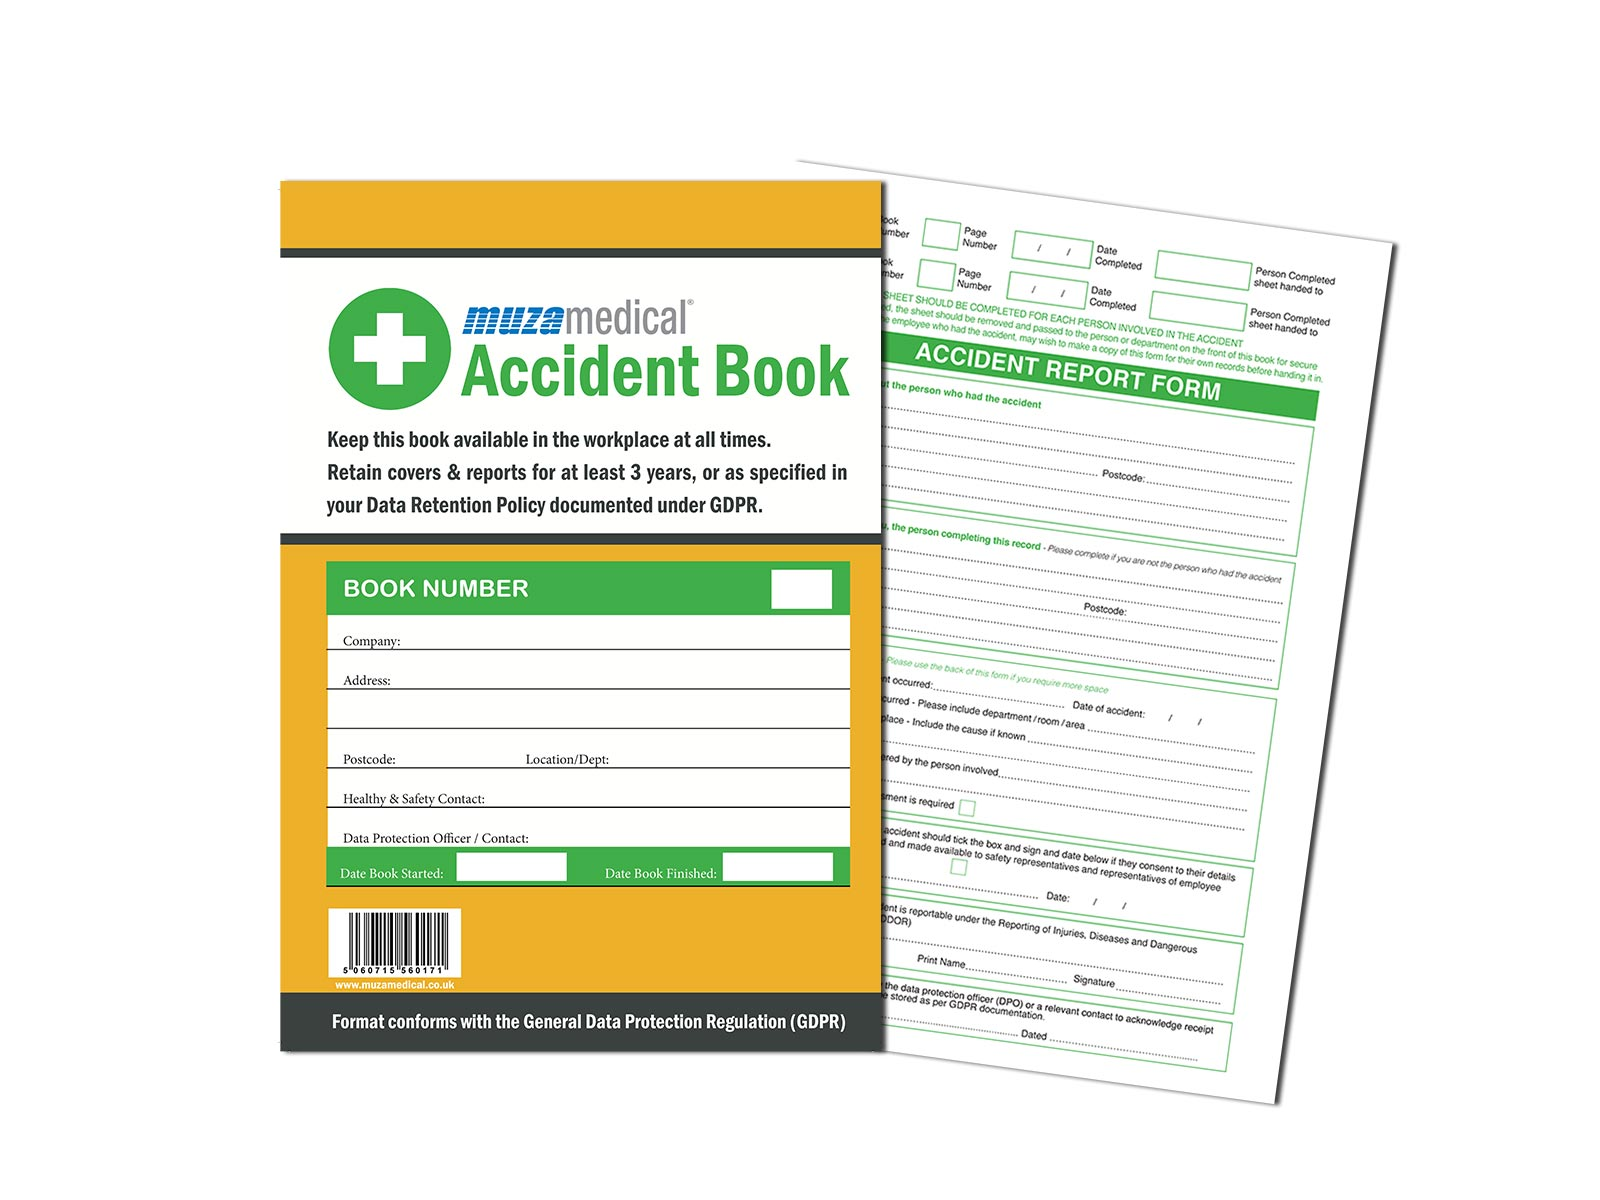 Accident Book A4 (50 perforated forms)